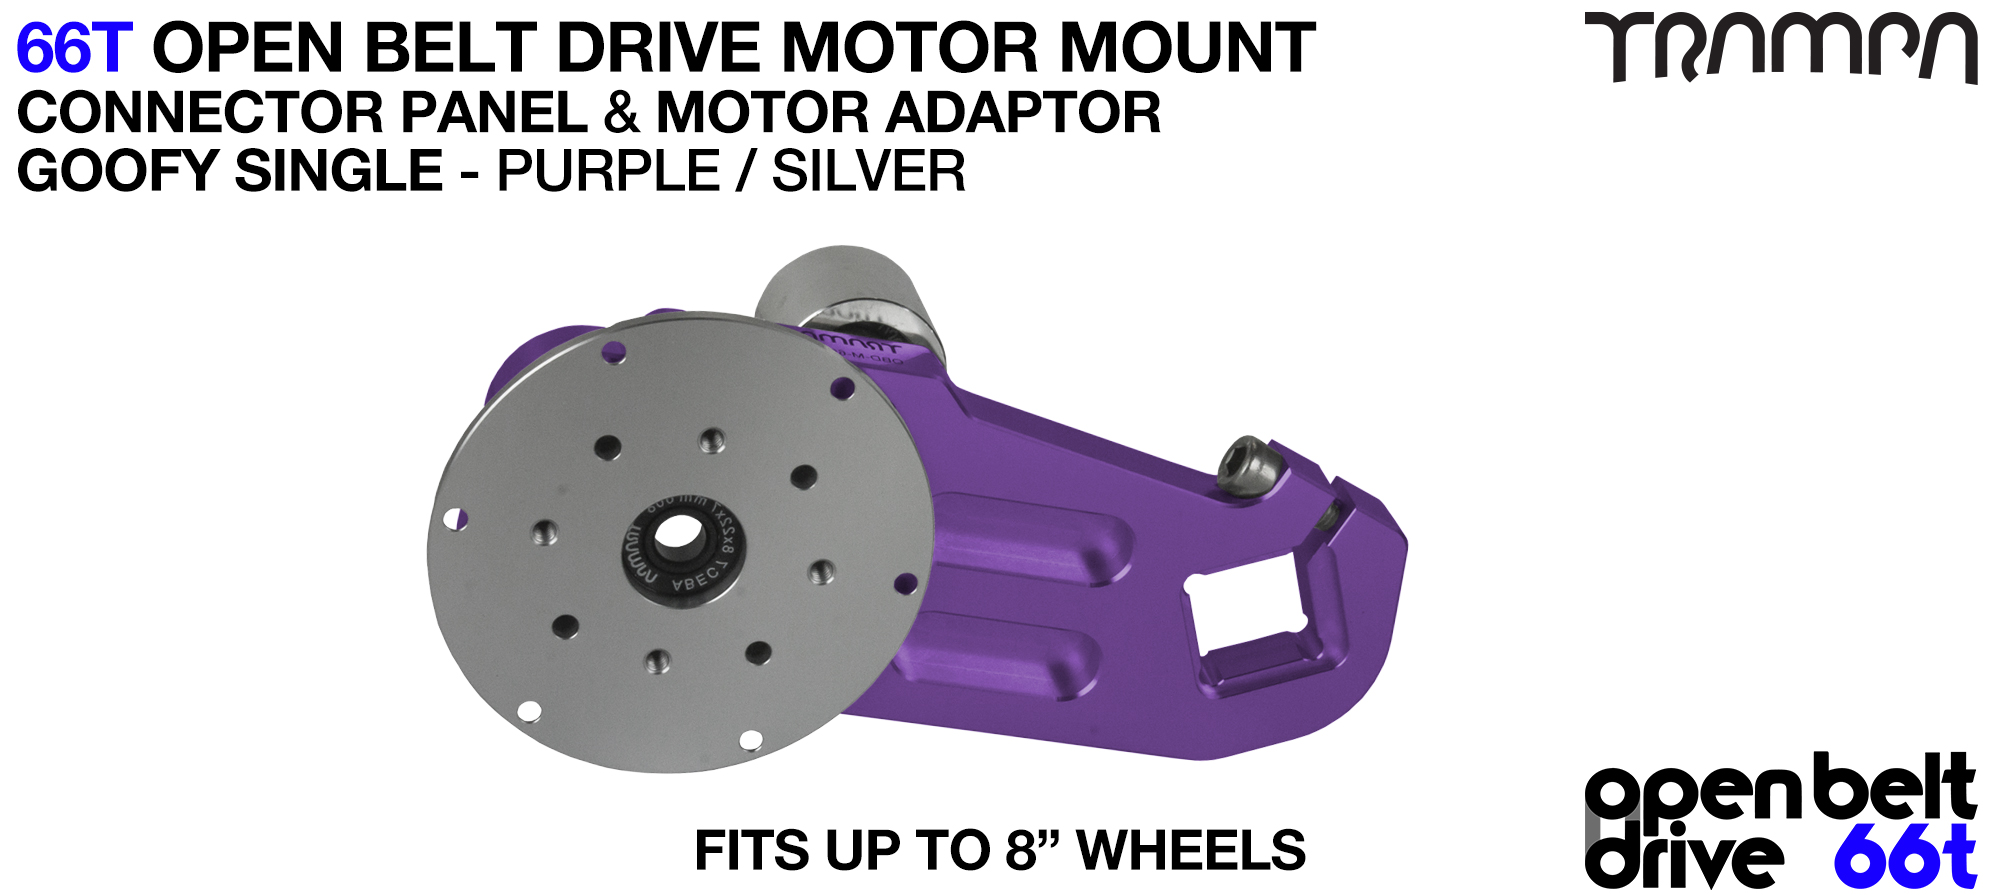 66T OPEN BELT DRIVE Motor Mount & Motor Adaptor - SINGLE PURPLE